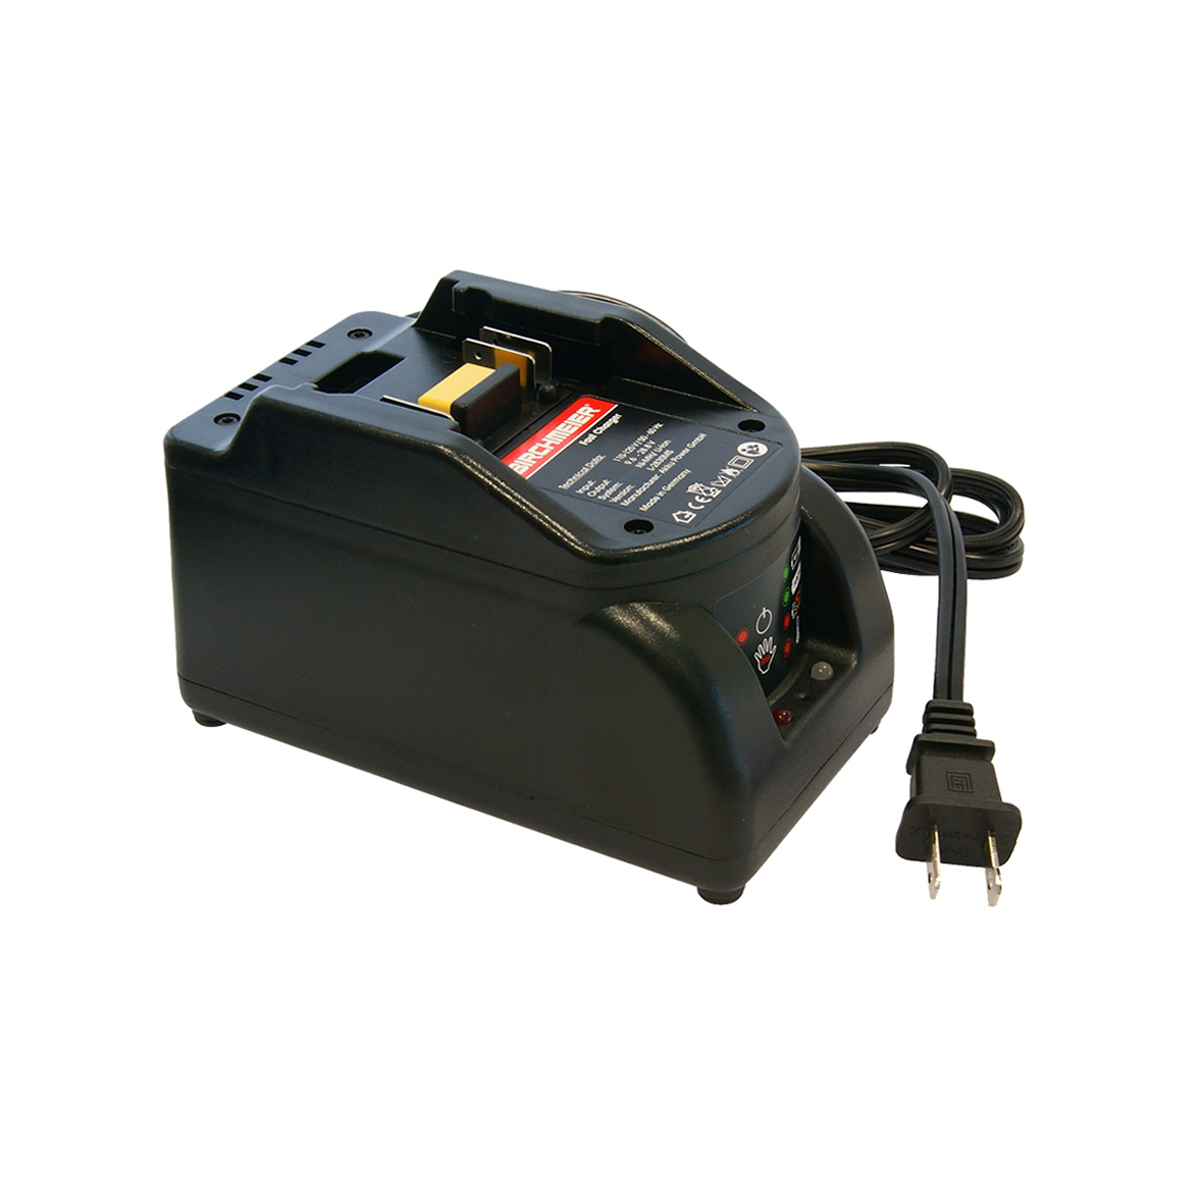 Battery charger assy. to battery Li-Ion REC 15 ABZ, USA